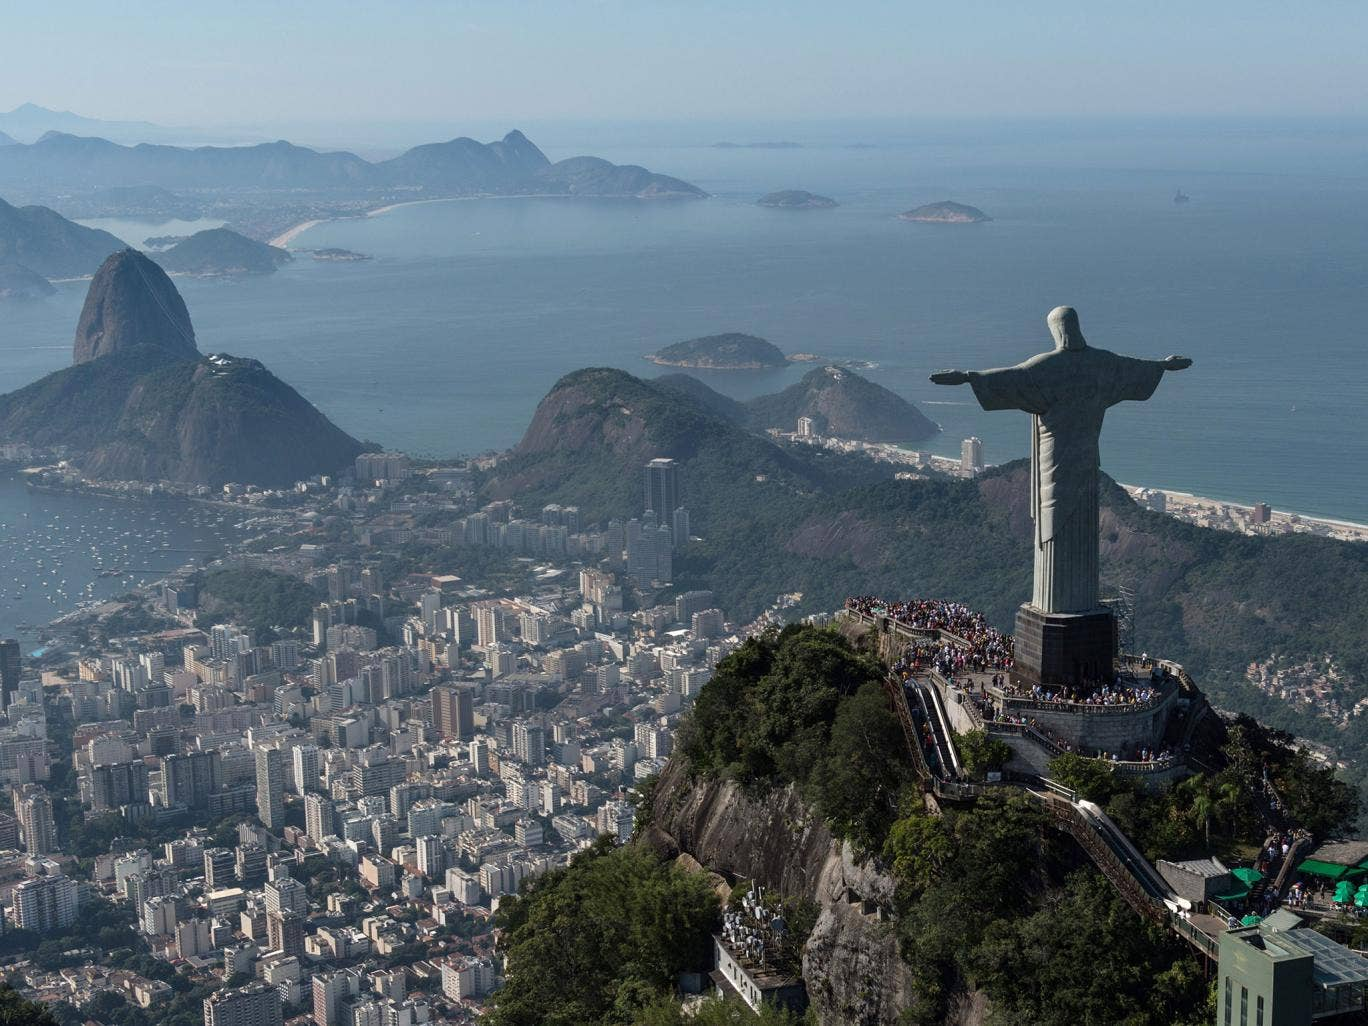 Aerial view of Christ the Redeemer statue, in Rio de Janeiro, Brazil, taken on June 26